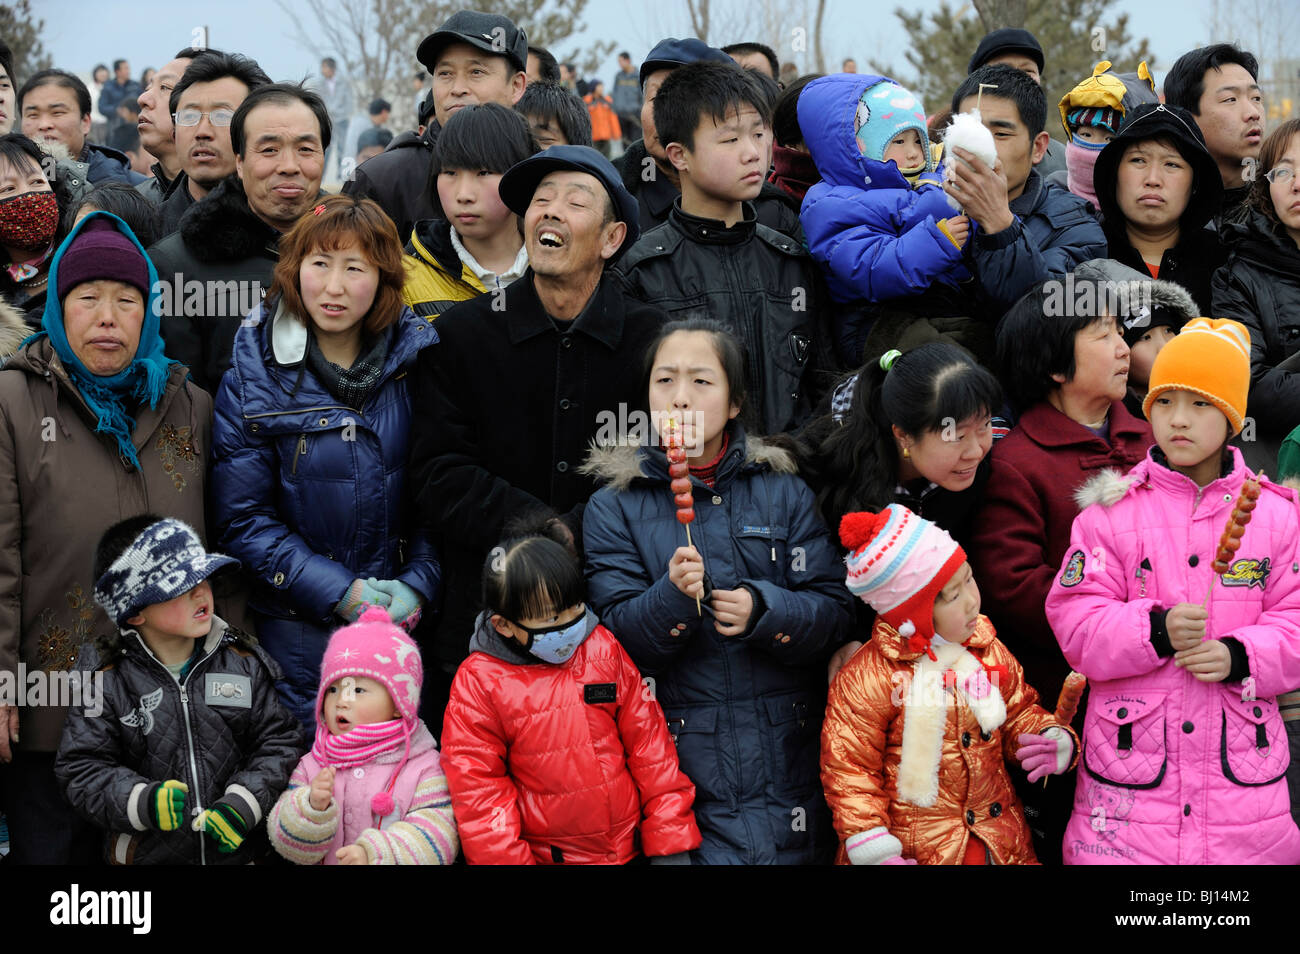 People look on Spring Festival performing in Yuxian, Hebei province, China. 28-Feb-2010 - Stock Image